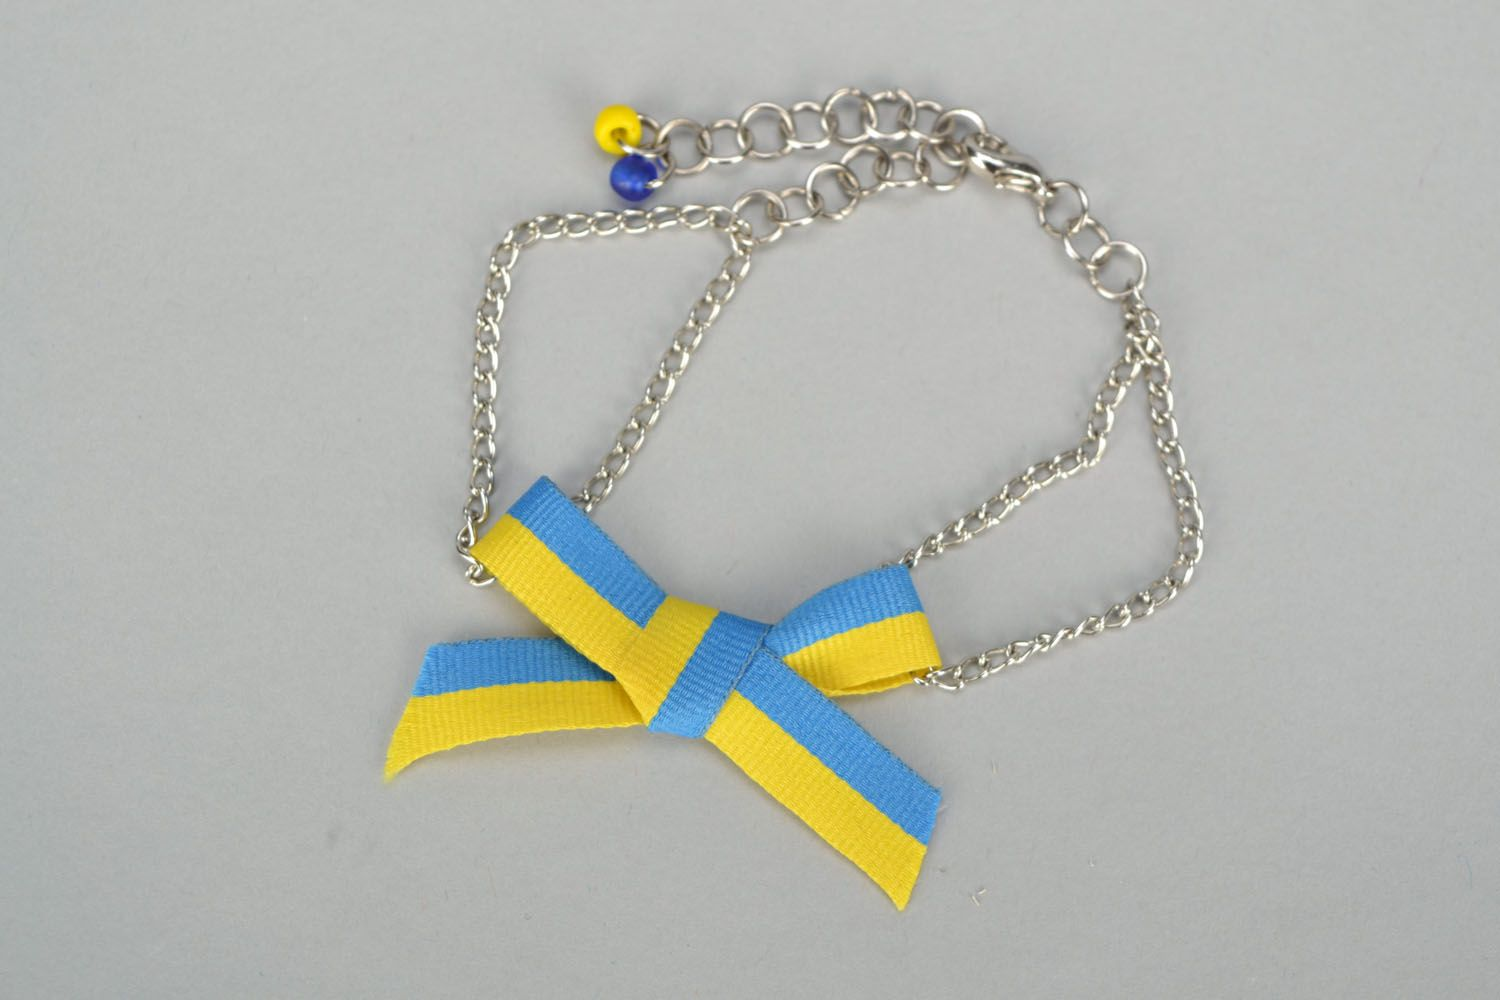 Homemade necklace with ribbon bow photo 2